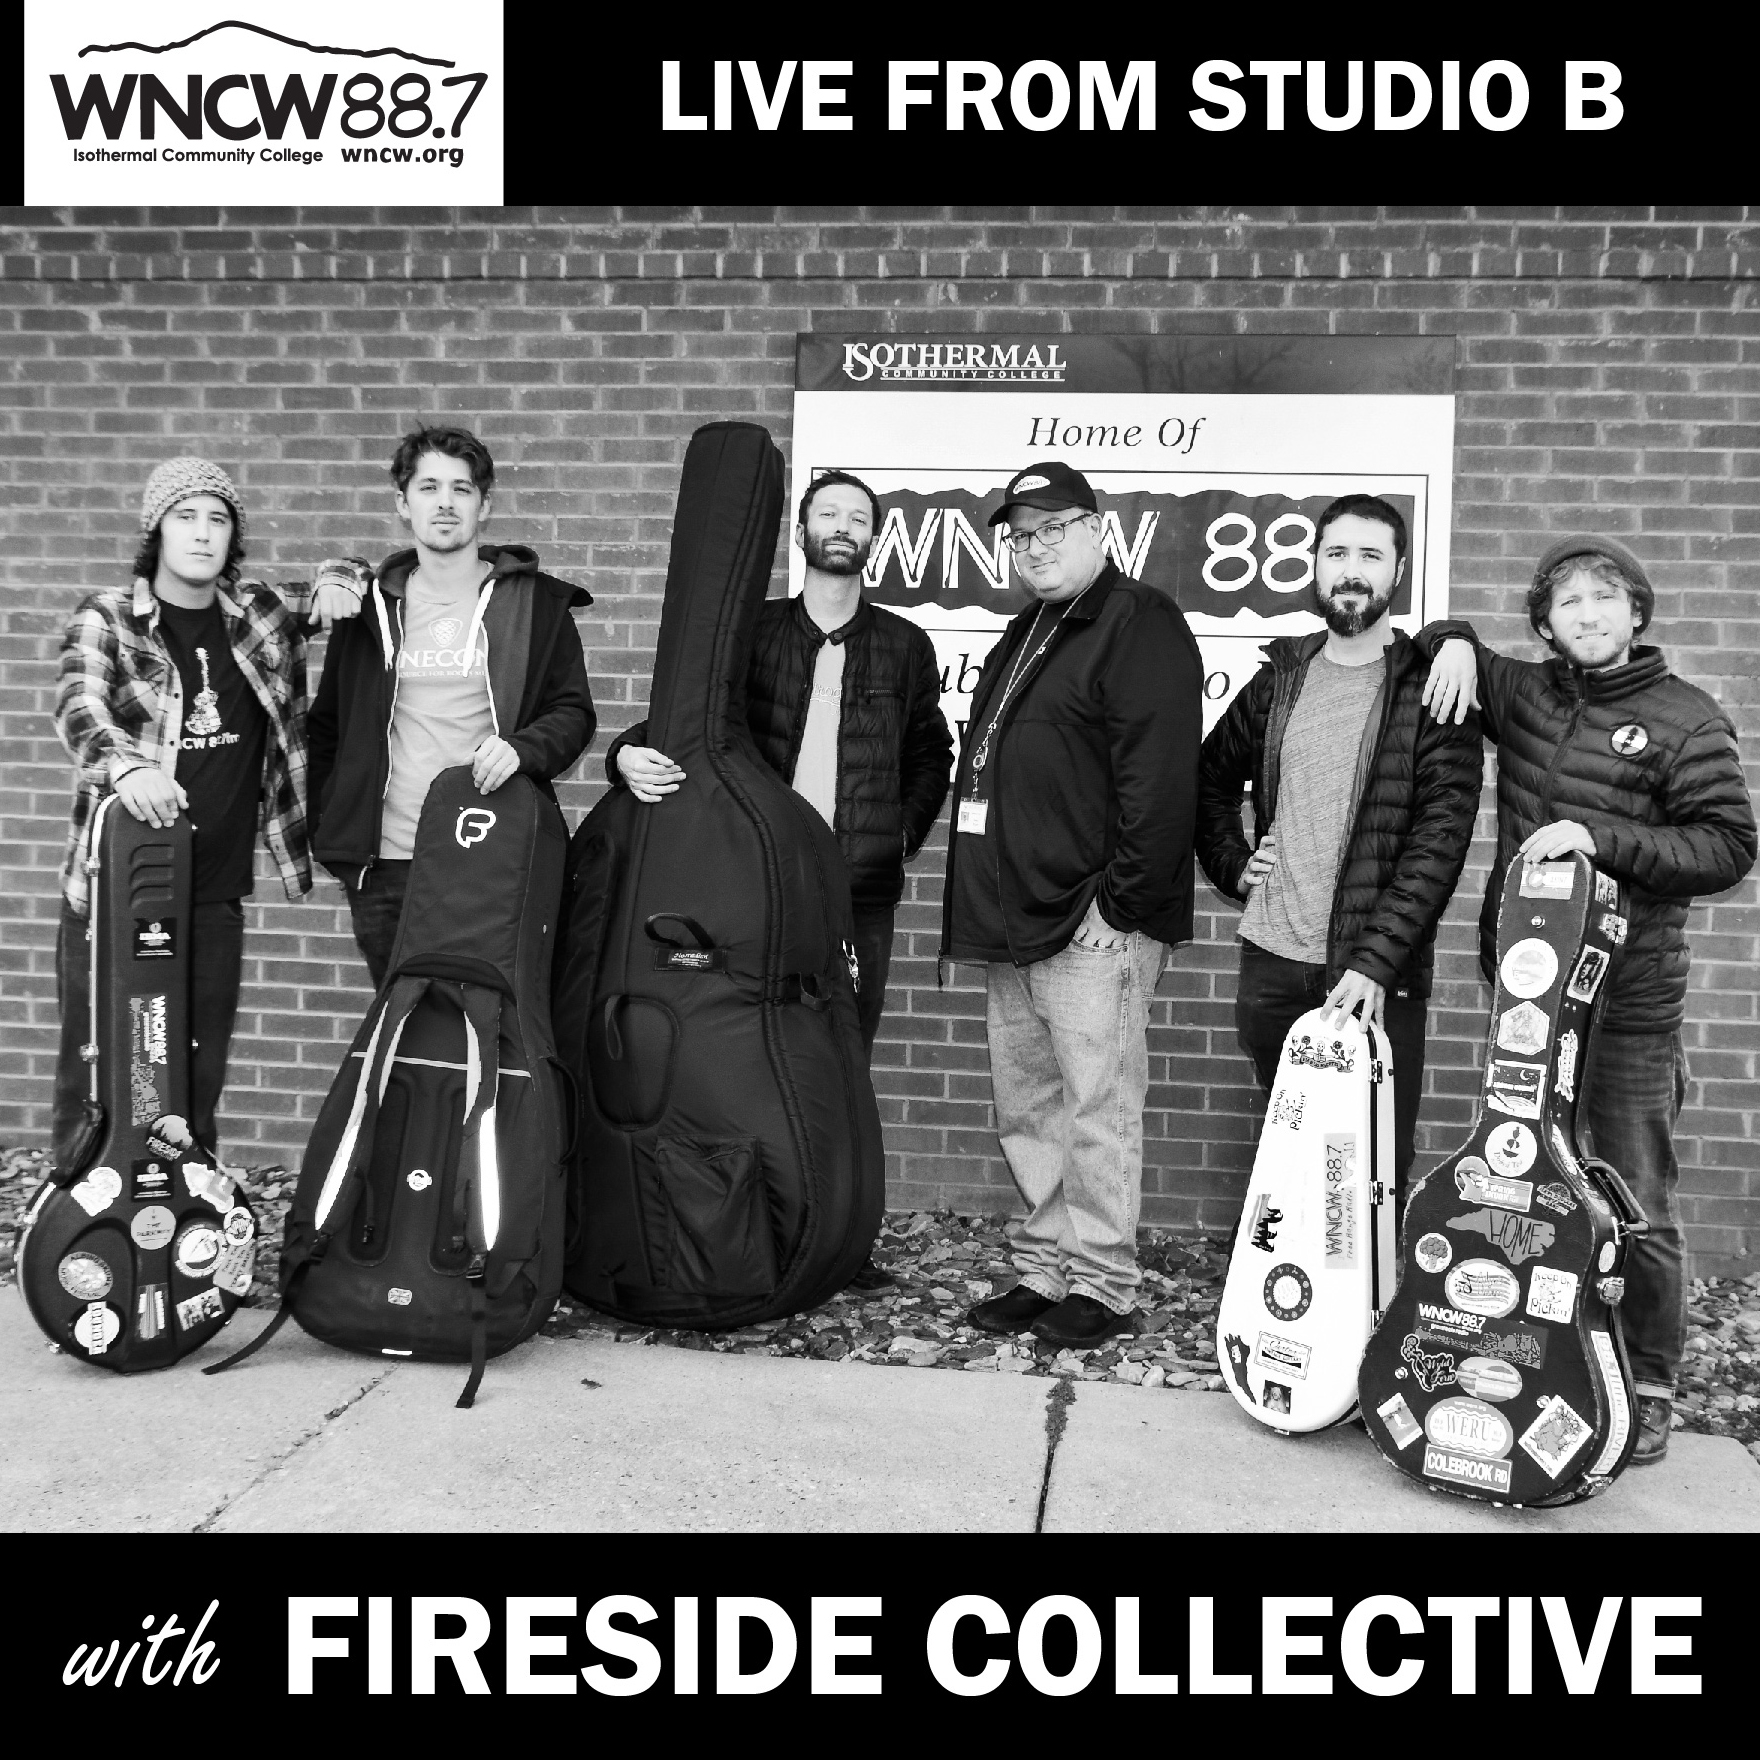 Live from Studio B with Fireside Collective